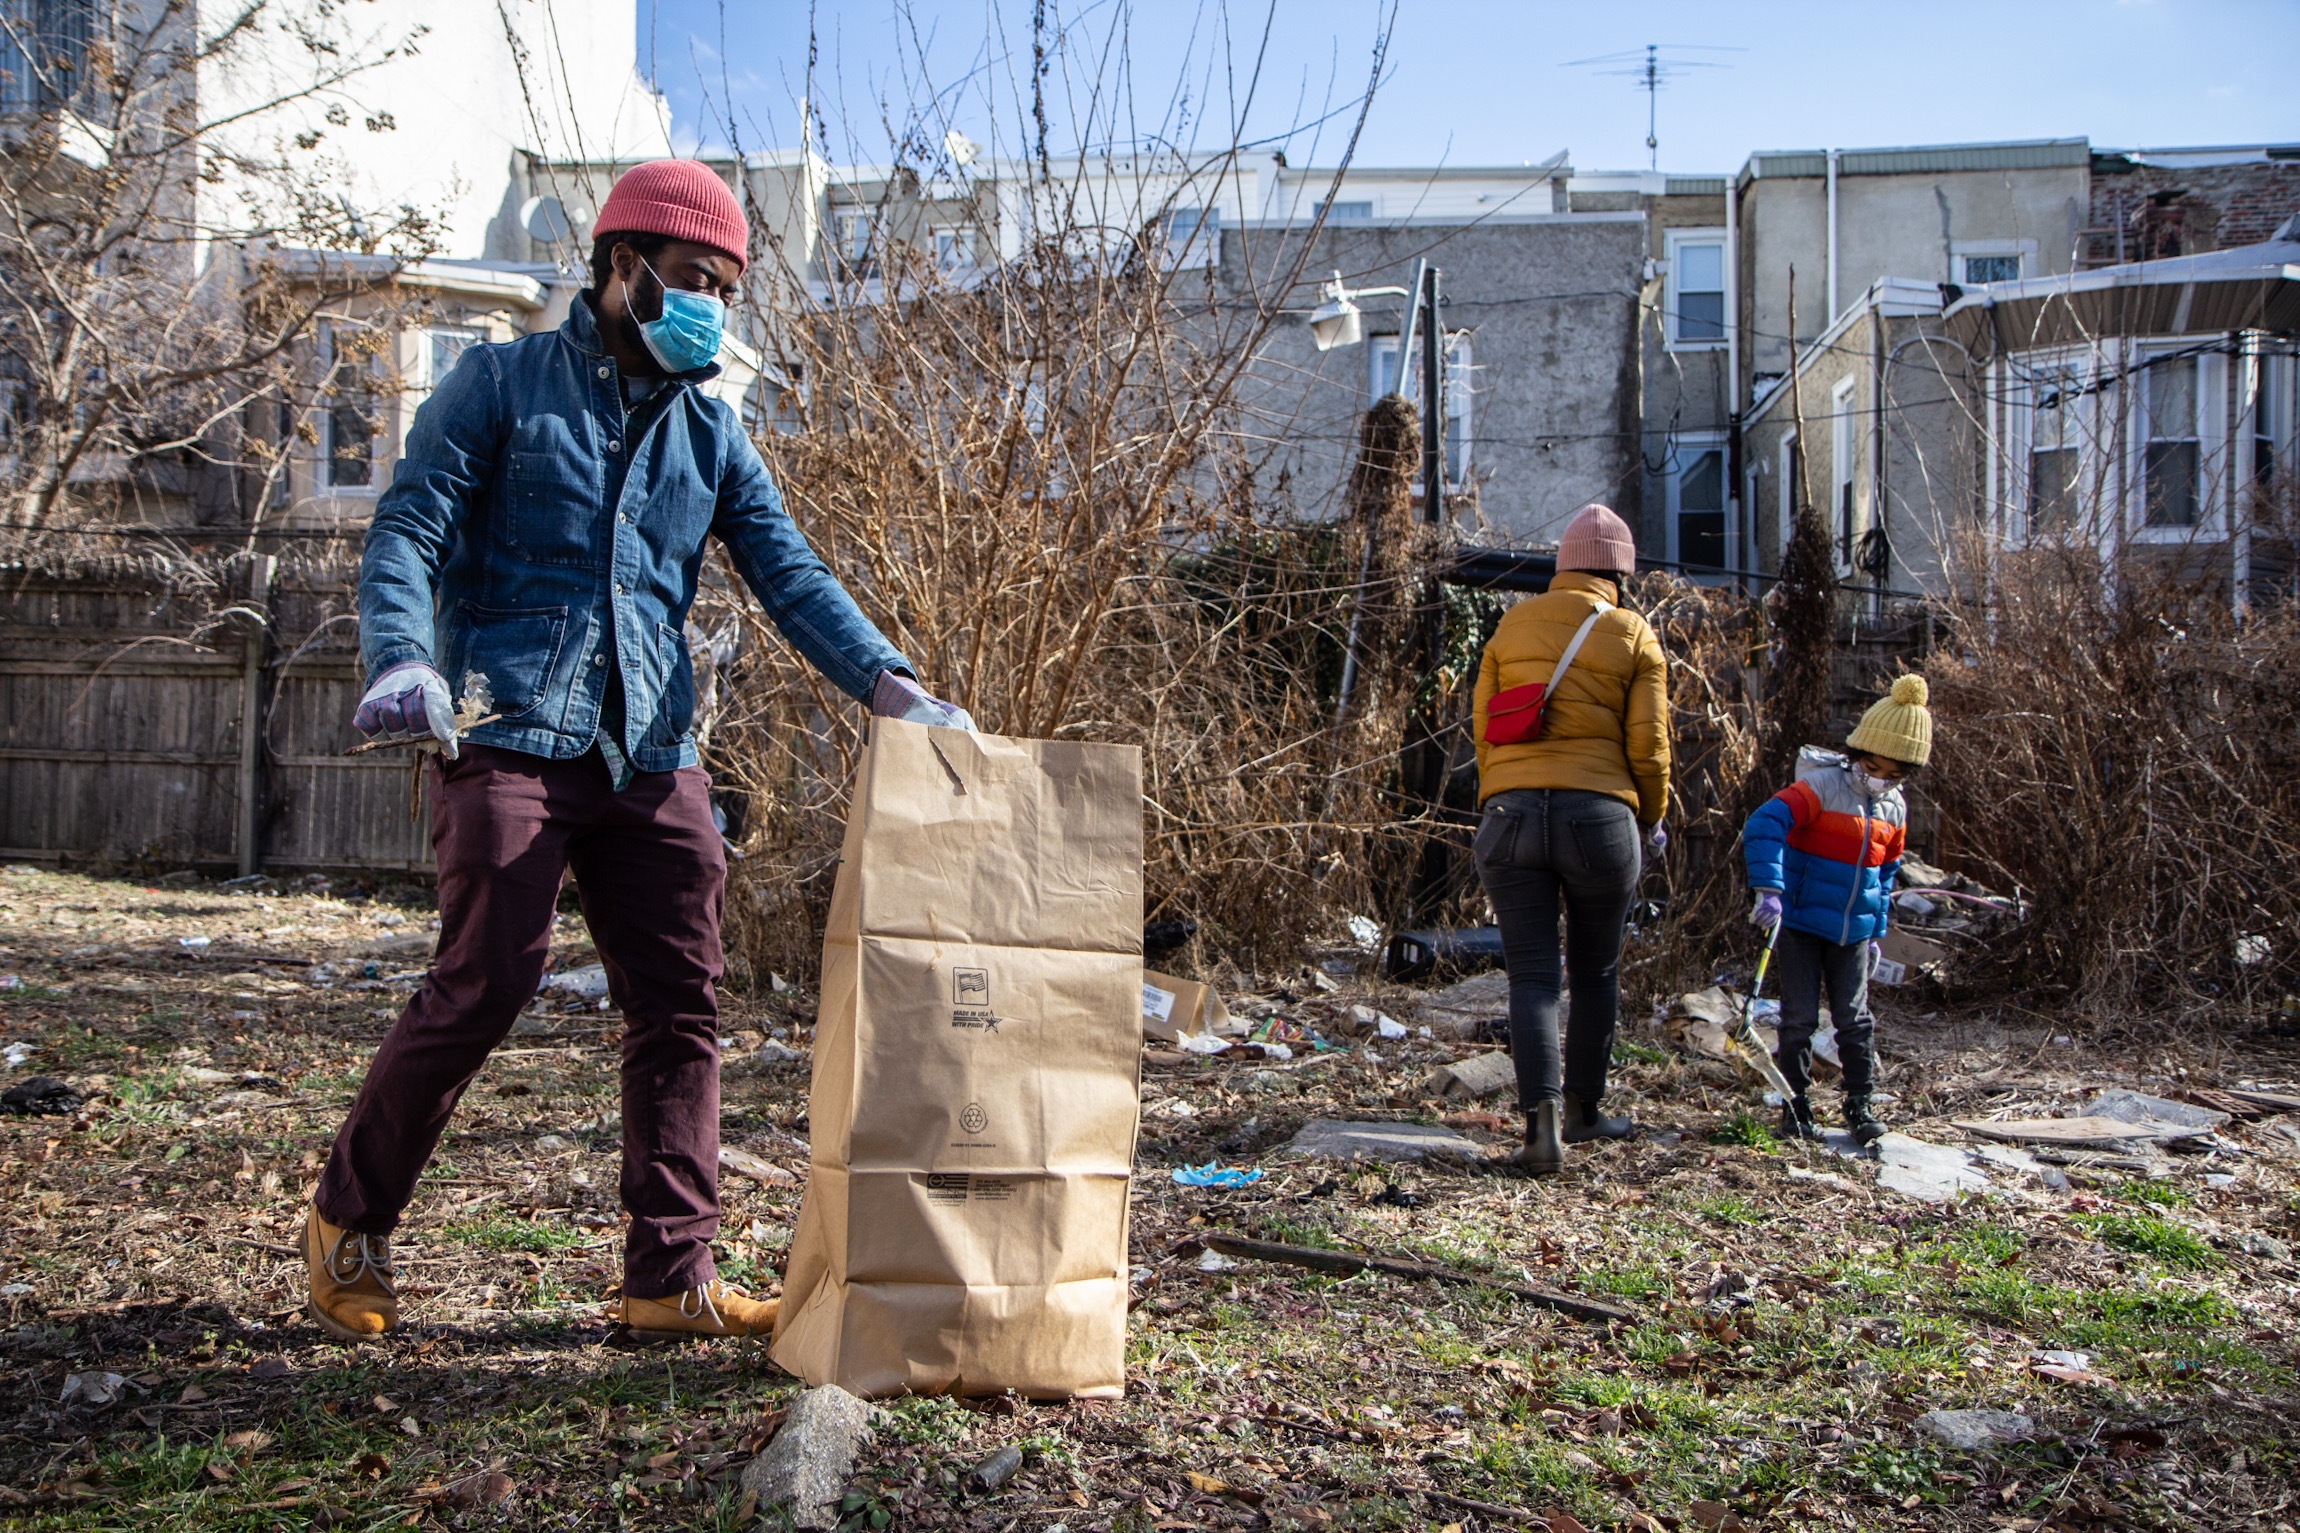 Robert Thompson (left), his wife, Eri Mizukane, and their 6-year-old son, Eiji, clean up a North Philly lot